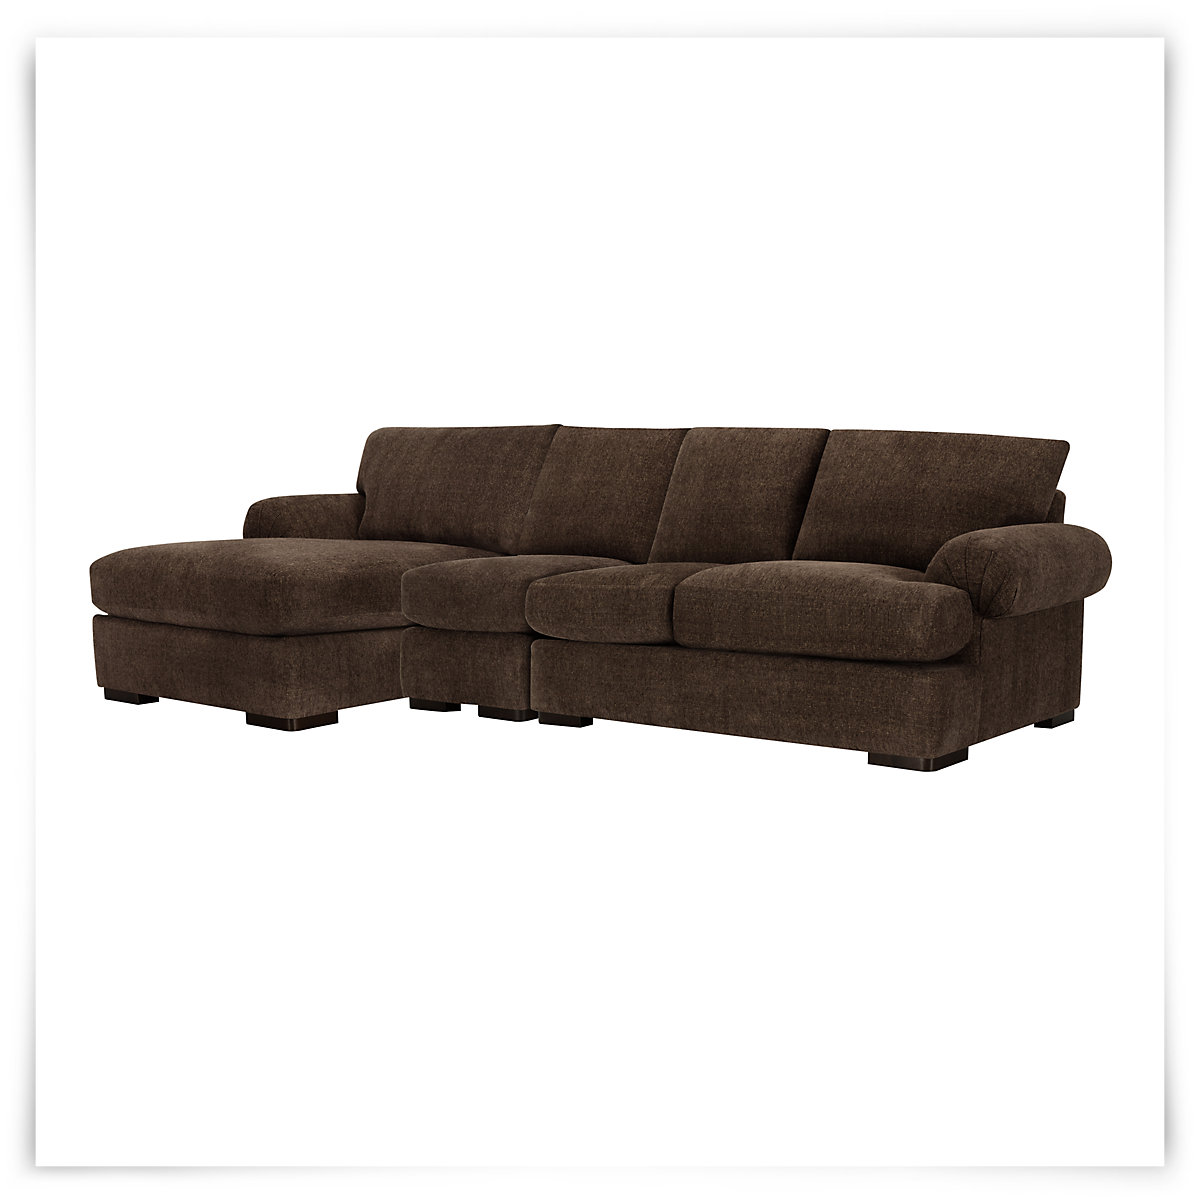 City furniture belair dk brown microfiber small left for Brown microfiber sectional with chaise